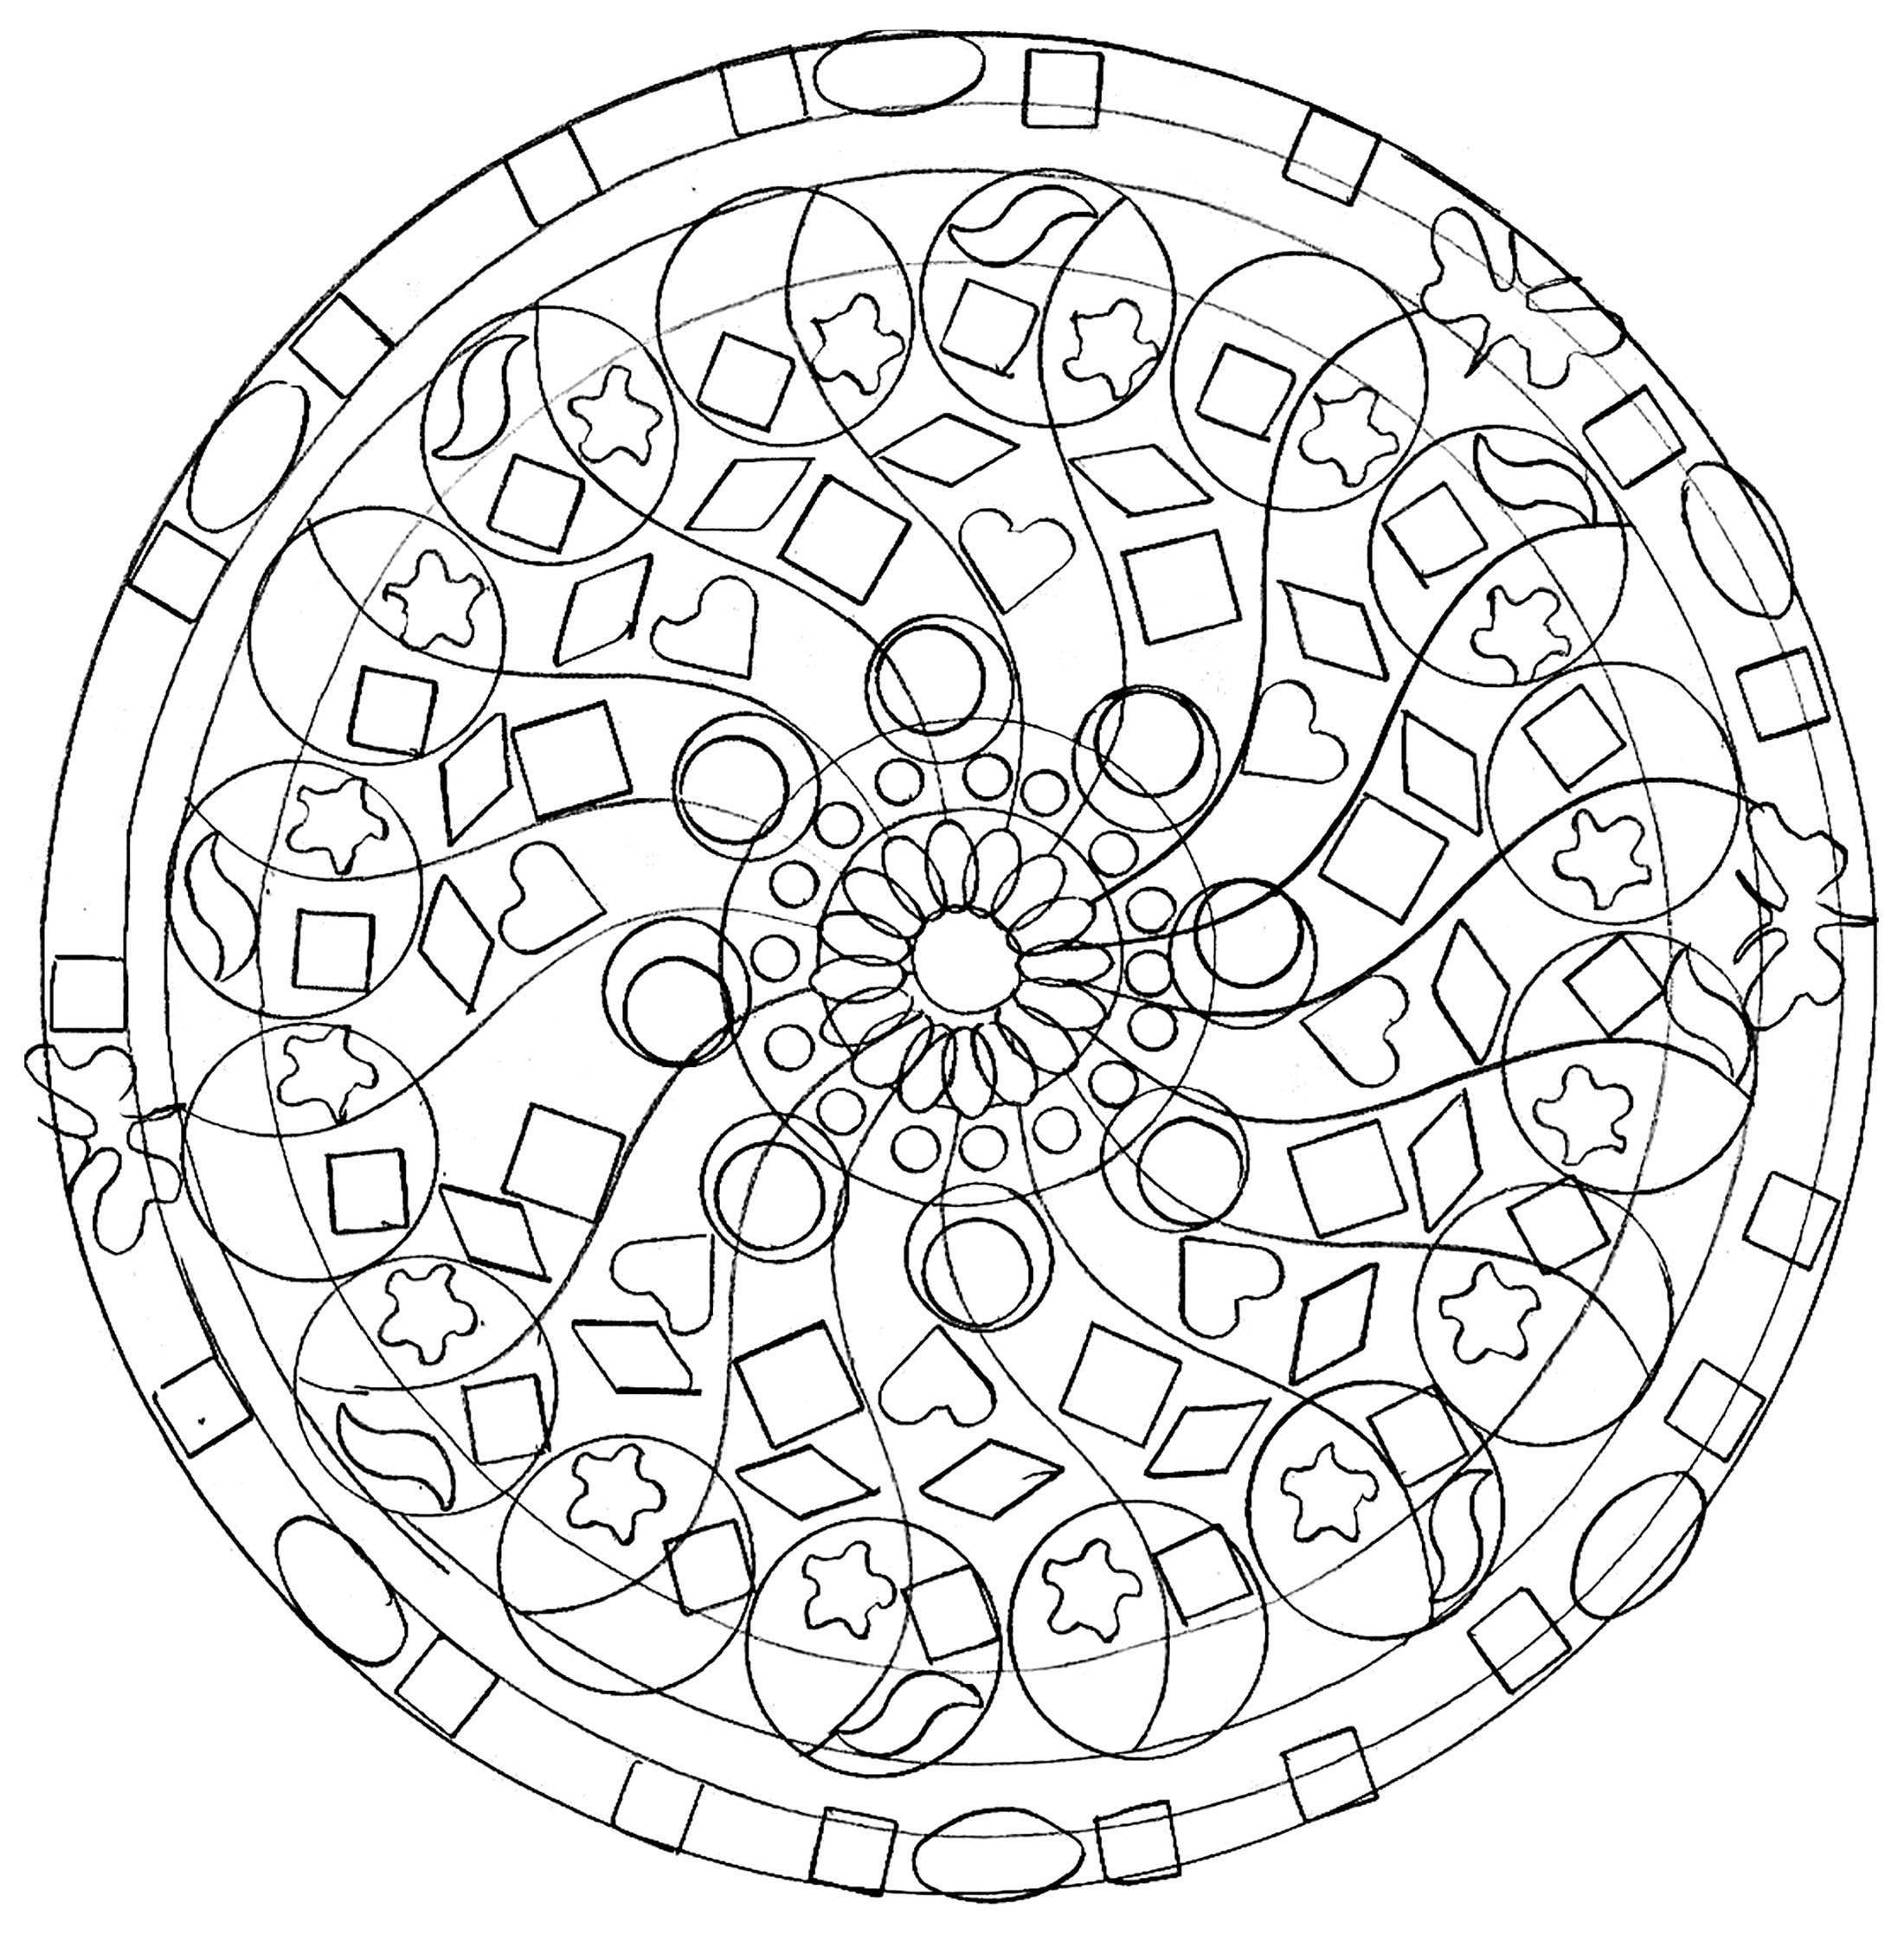 simple mandalas to color simple mandala coloring pages download and print for free mandalas color simple to